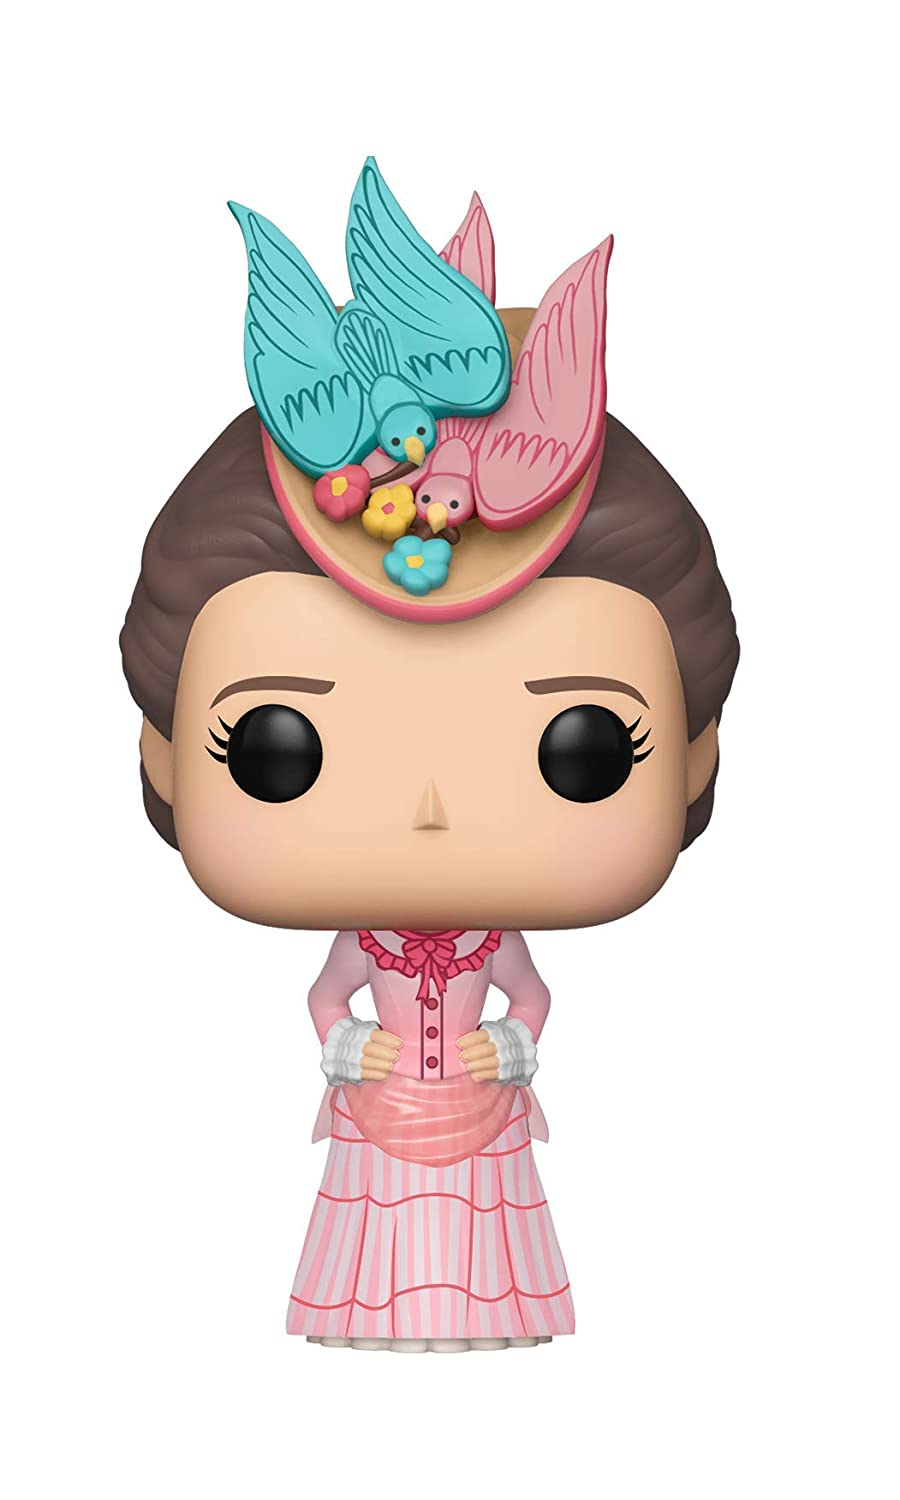 Standard Multicolor Pink Dress Collectible Figure Funko 34857  Pop Disney: Mary Poppins ReturnsMary at The Music Hall